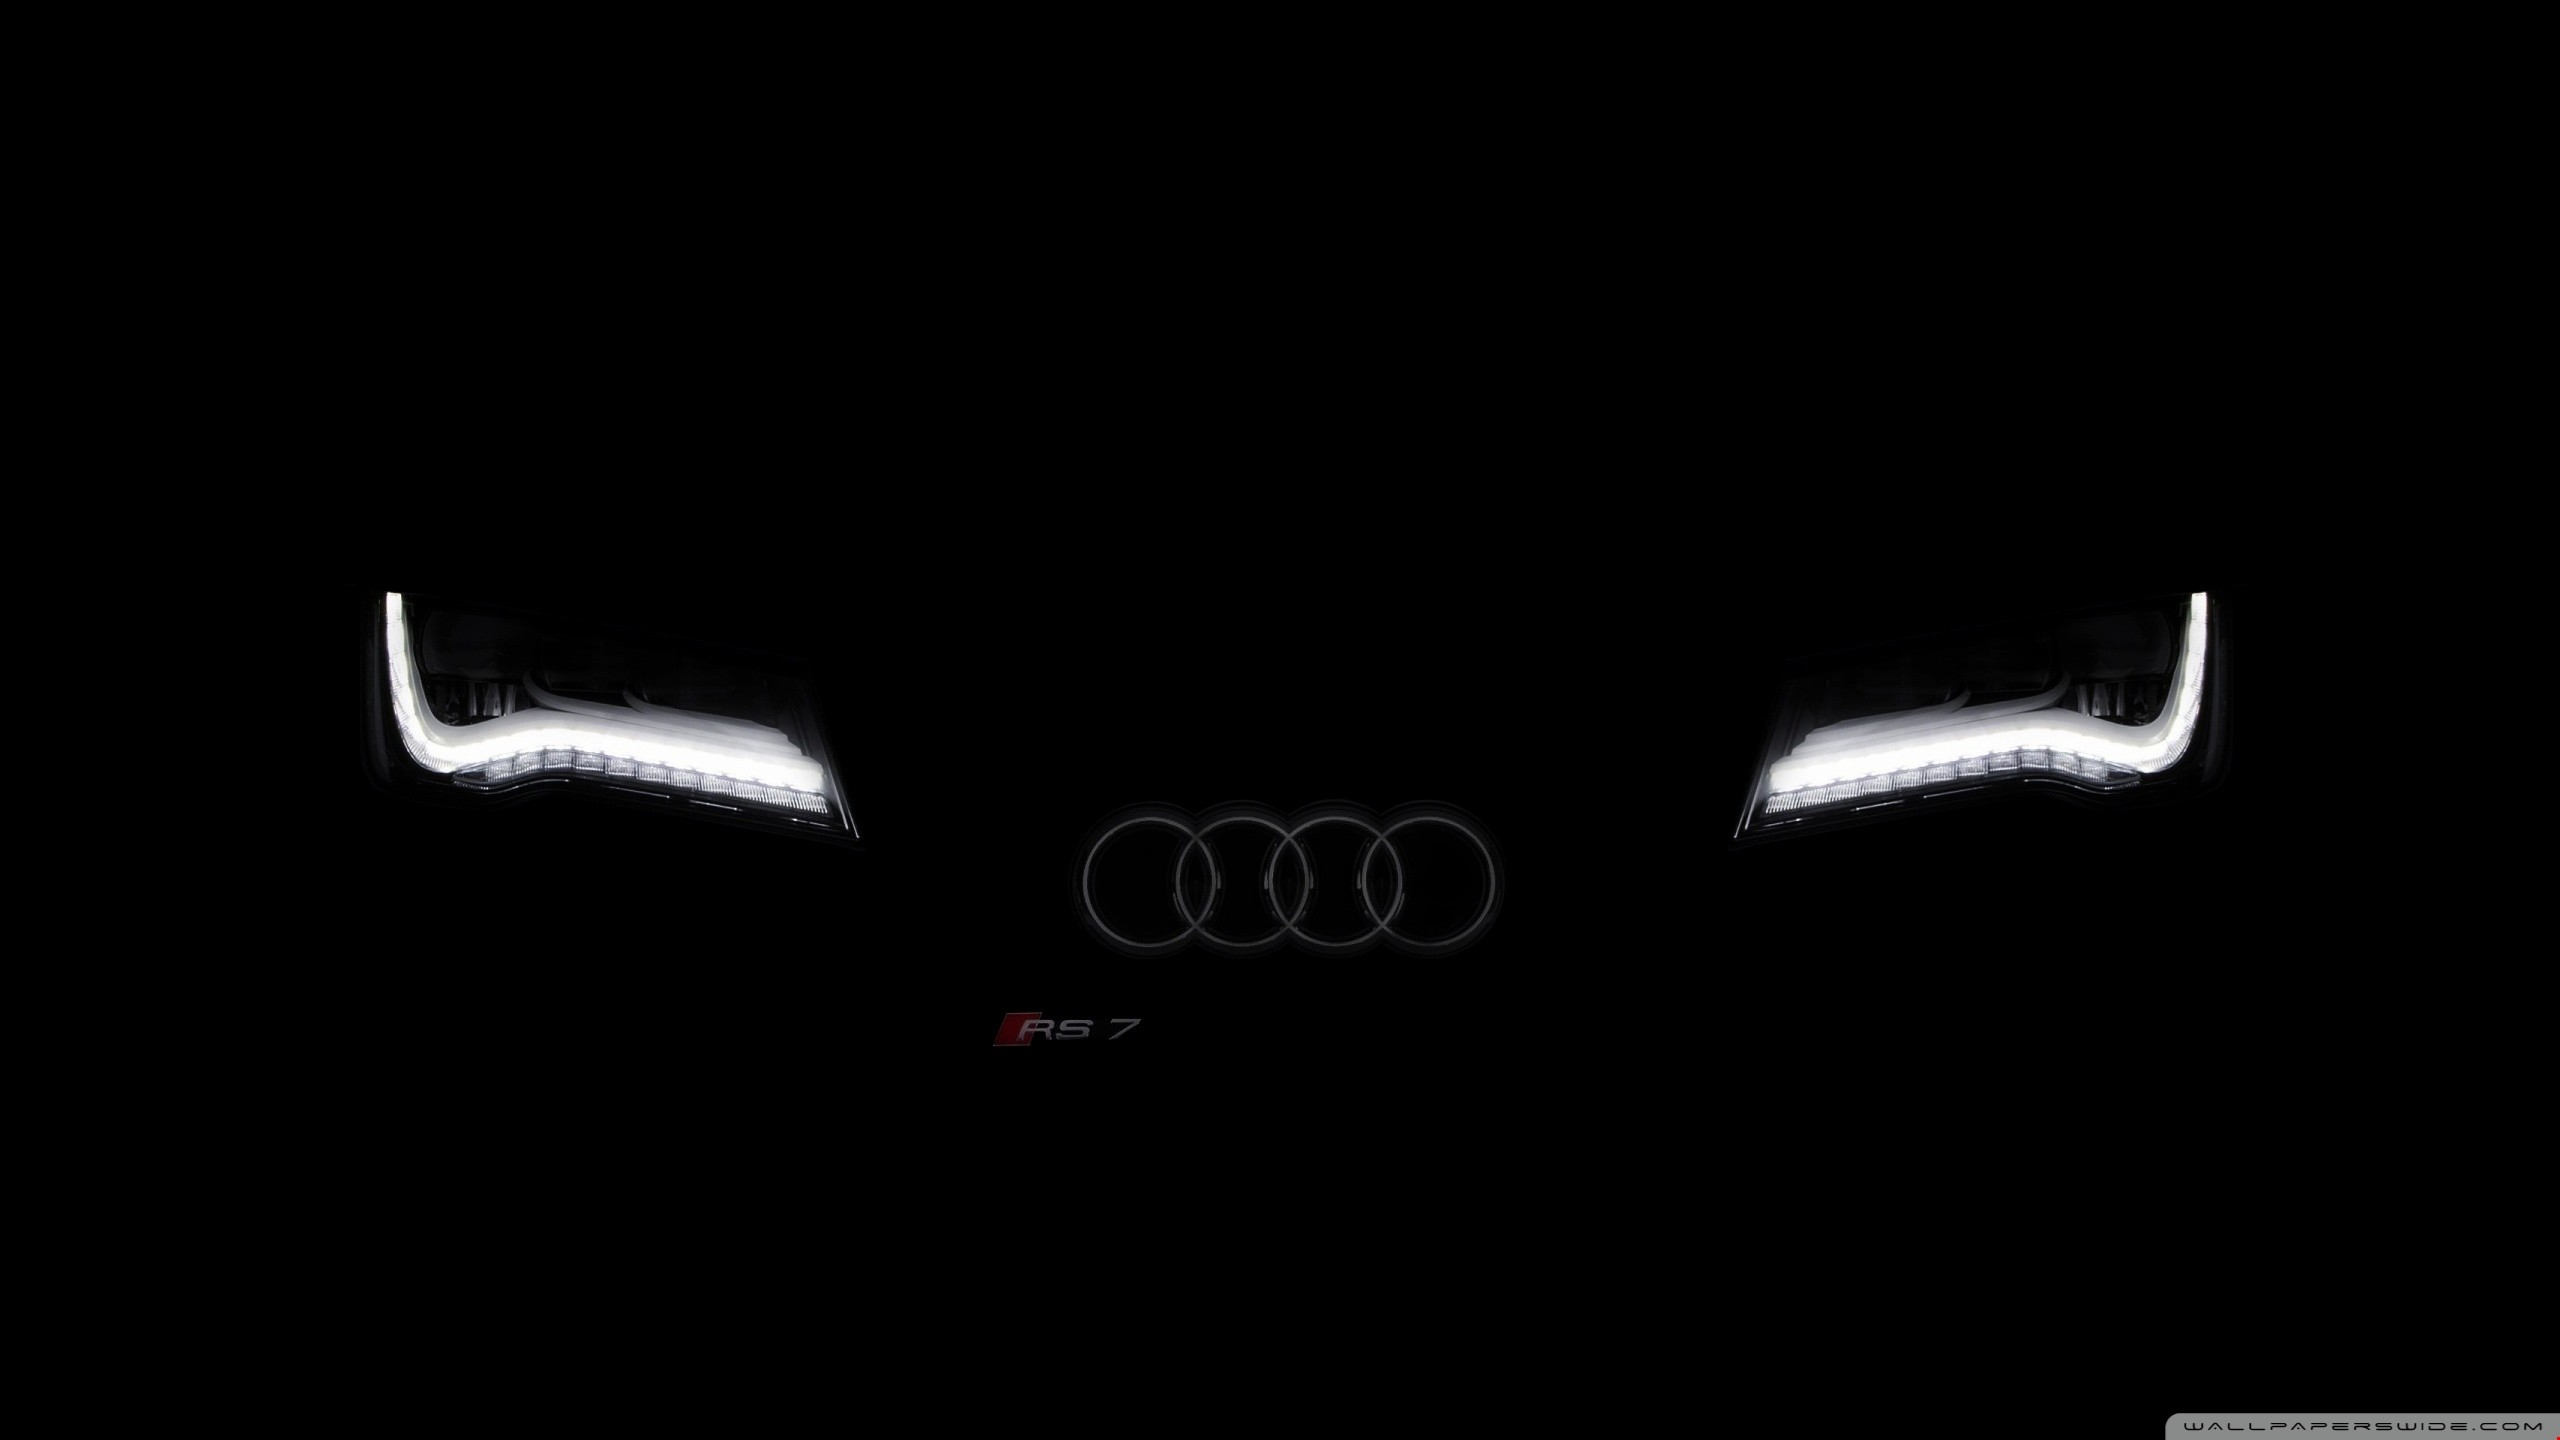 Res: 2560x1440, Download 2k Faded AUDI - Black & Dark Wallpapers HD